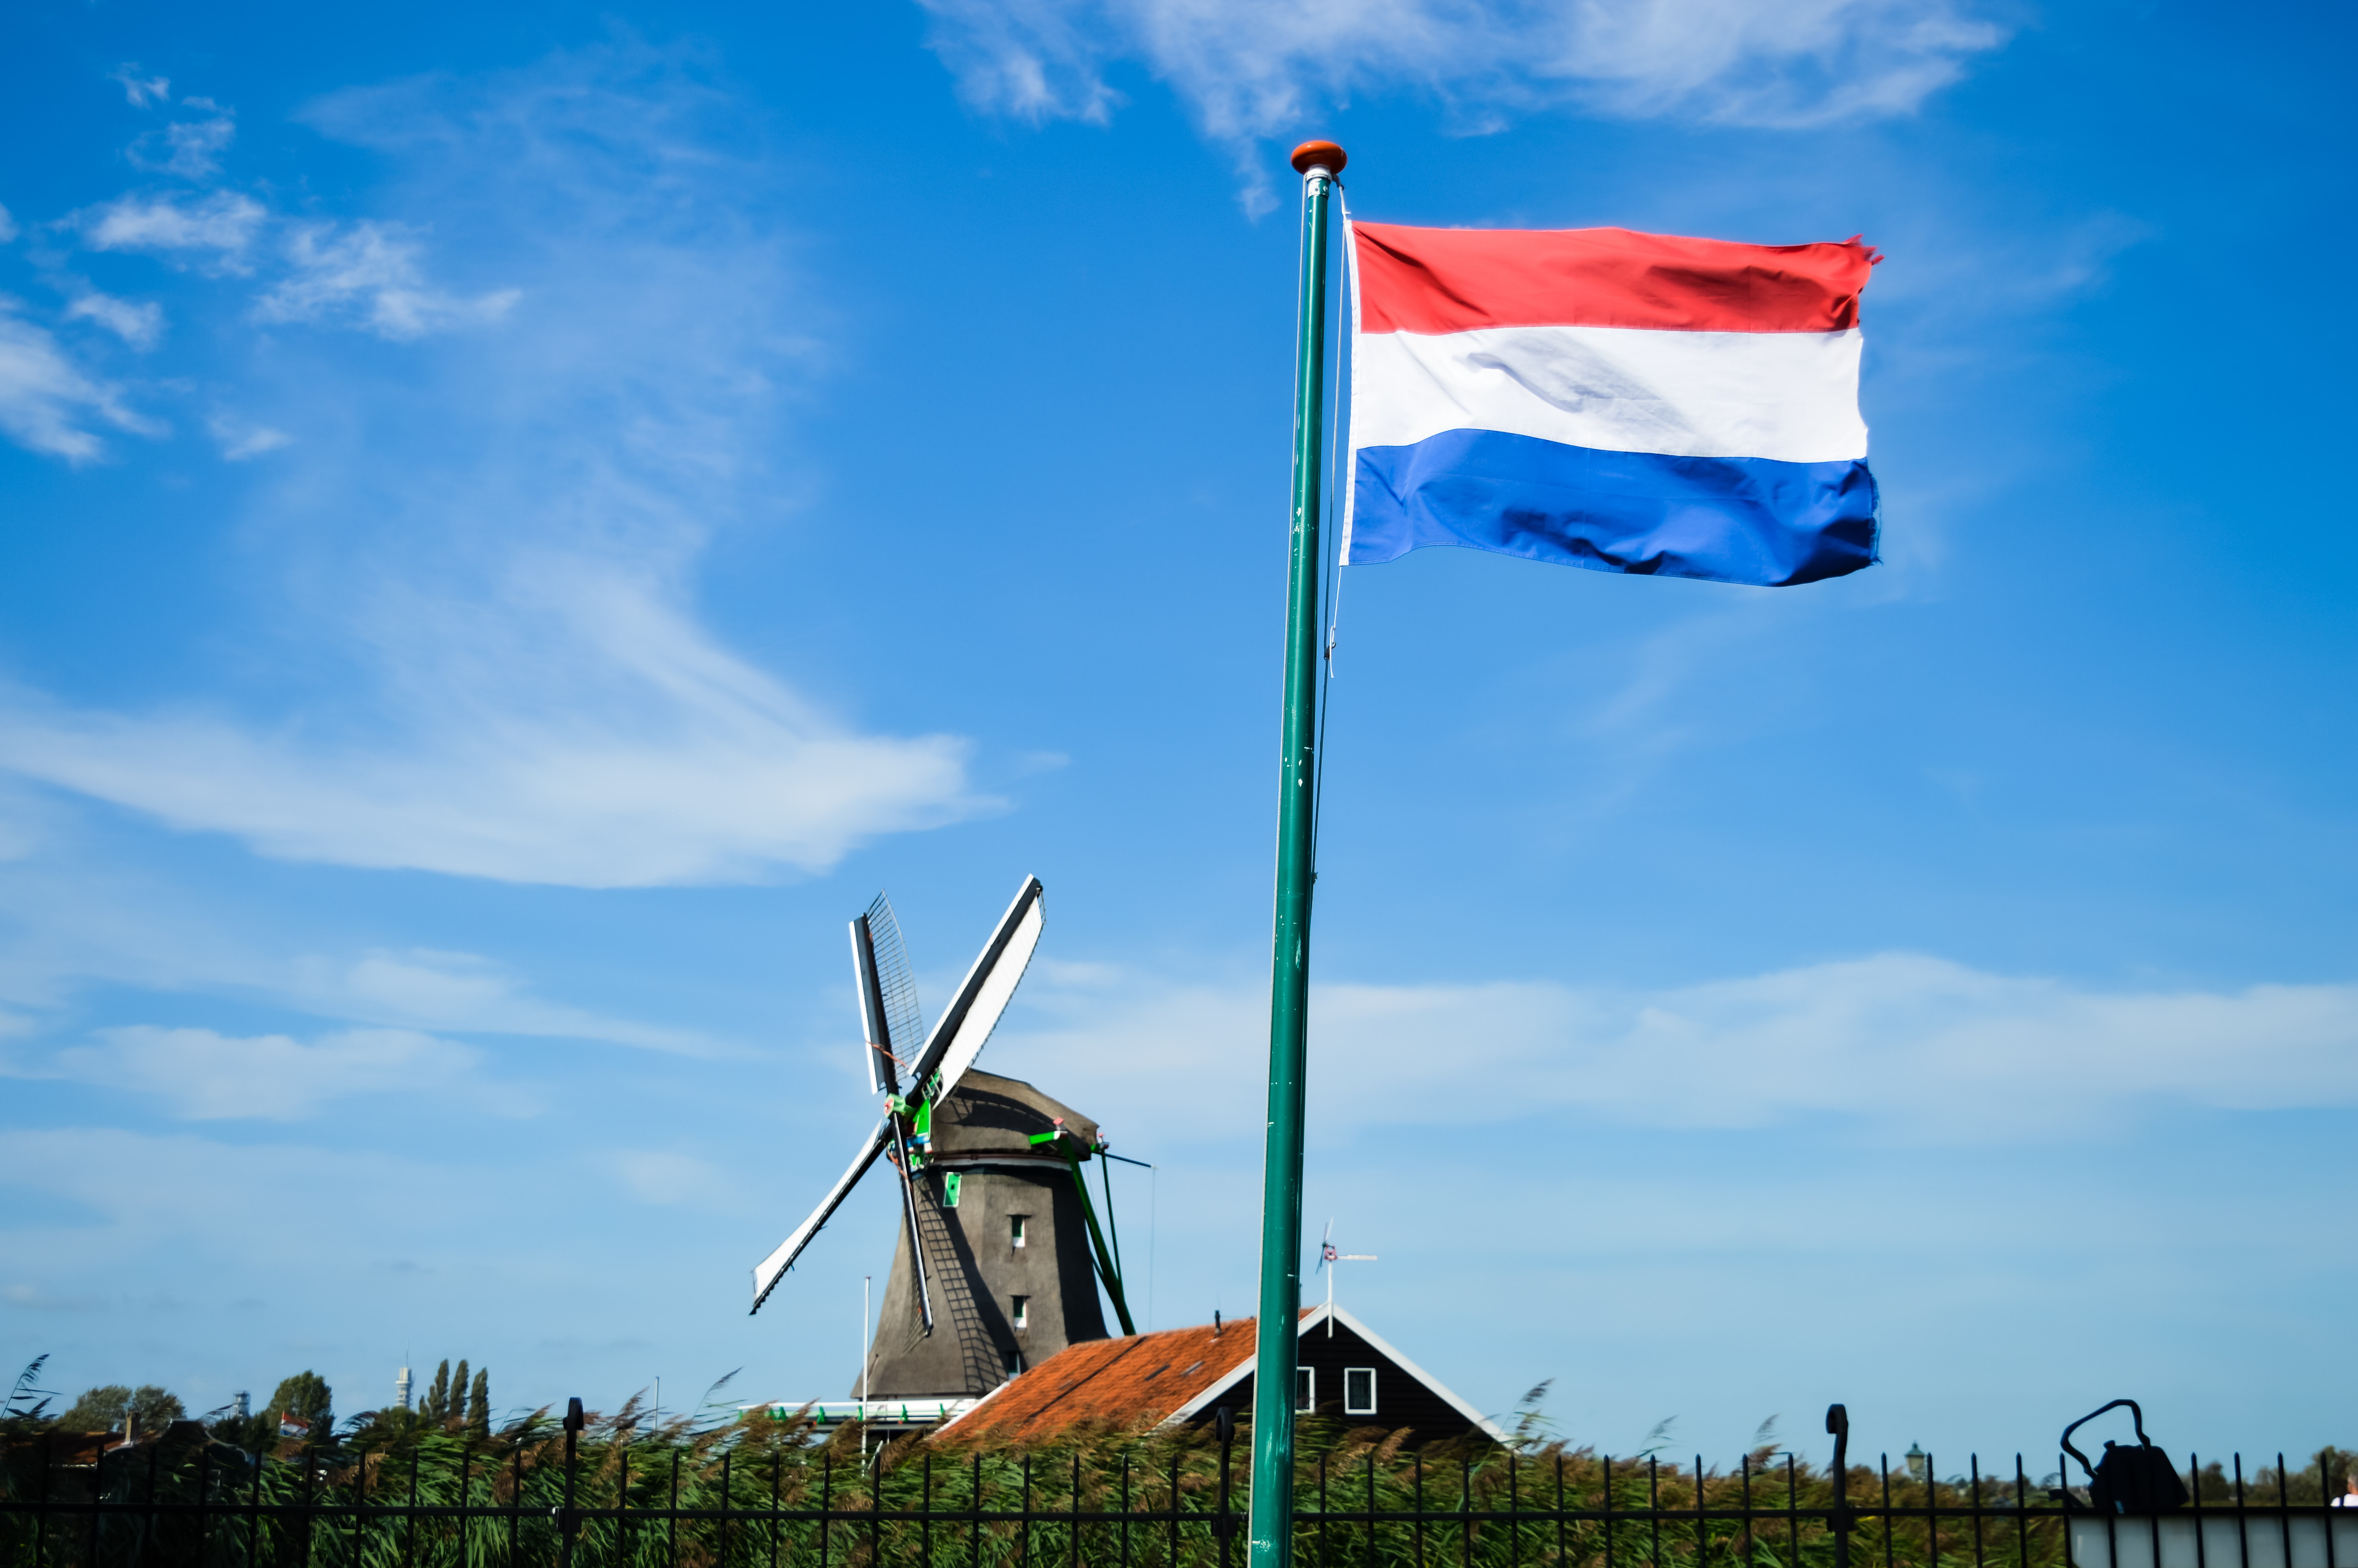 Dutch Competition Authorities Given Fortnight to Respond to Match Group's Apple Complaint